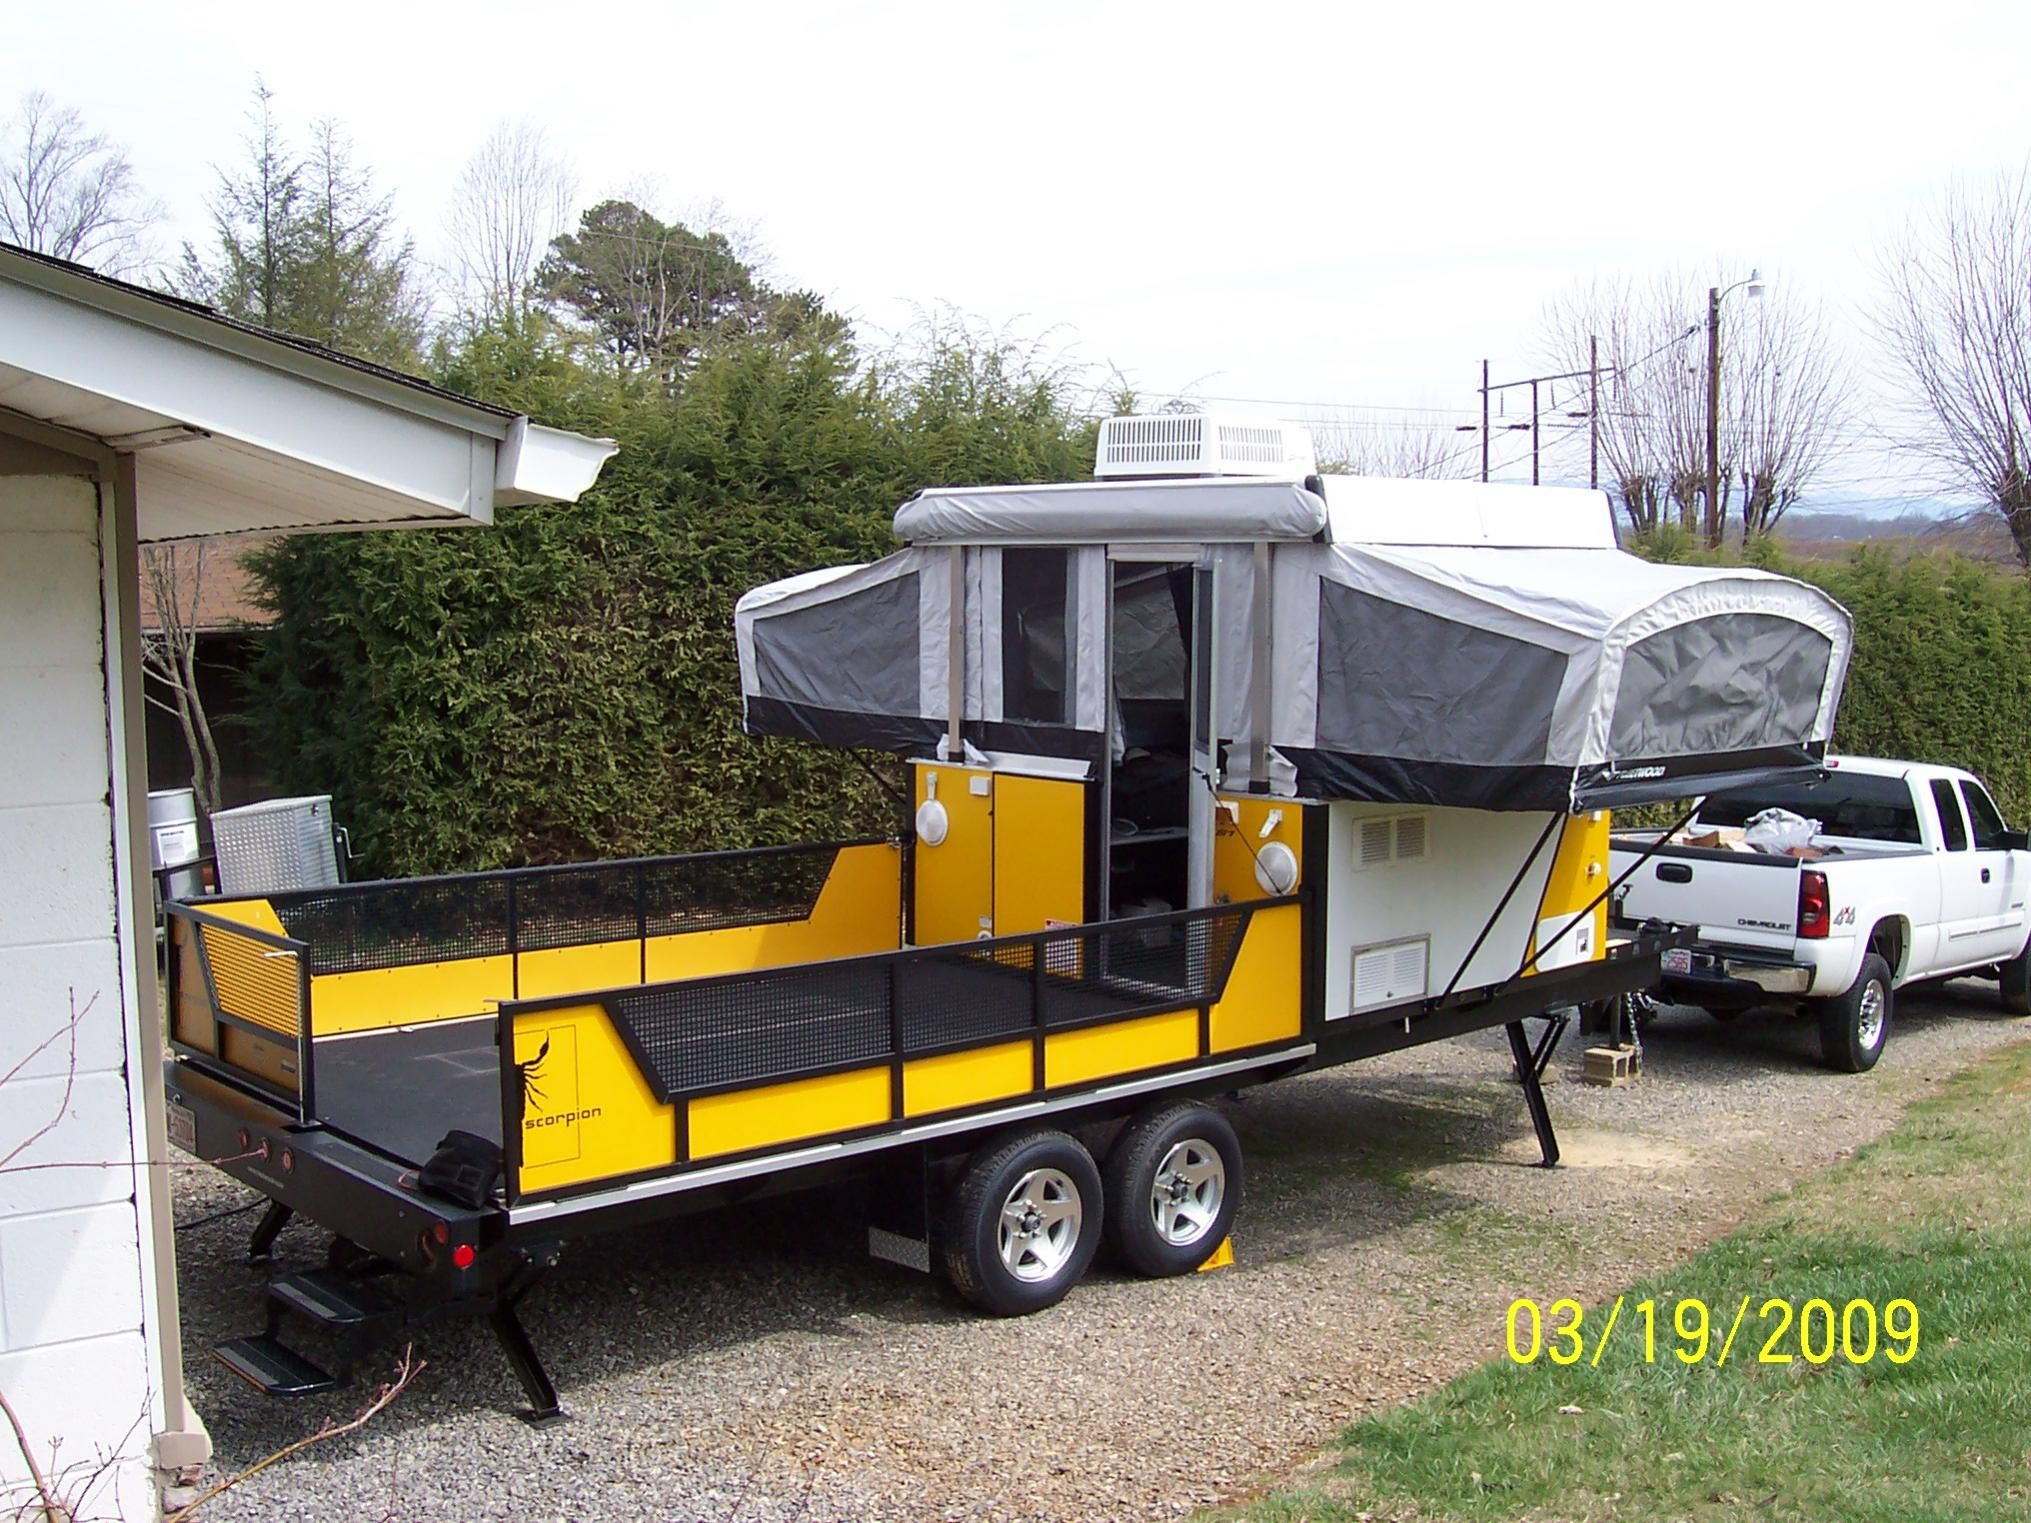 Fleetwood Scorpion S1 Toy Hauler Camper- | Awesome Camping ... on pilgrim trailers, hornet trailers, v-cross trailers, forest river trailers, newmar trailers, dutchmen trailers, towlite trailers, hy-line trailers, kz trailers, prime time trailers, sidekick trailers, sunset trail trailers, r vision trailers, ultra light trailers, knaus trailers, ultra lite trailers, everlite trailers, trail lite trailers, shadow cruiser trailers, ultra hauler trailers,